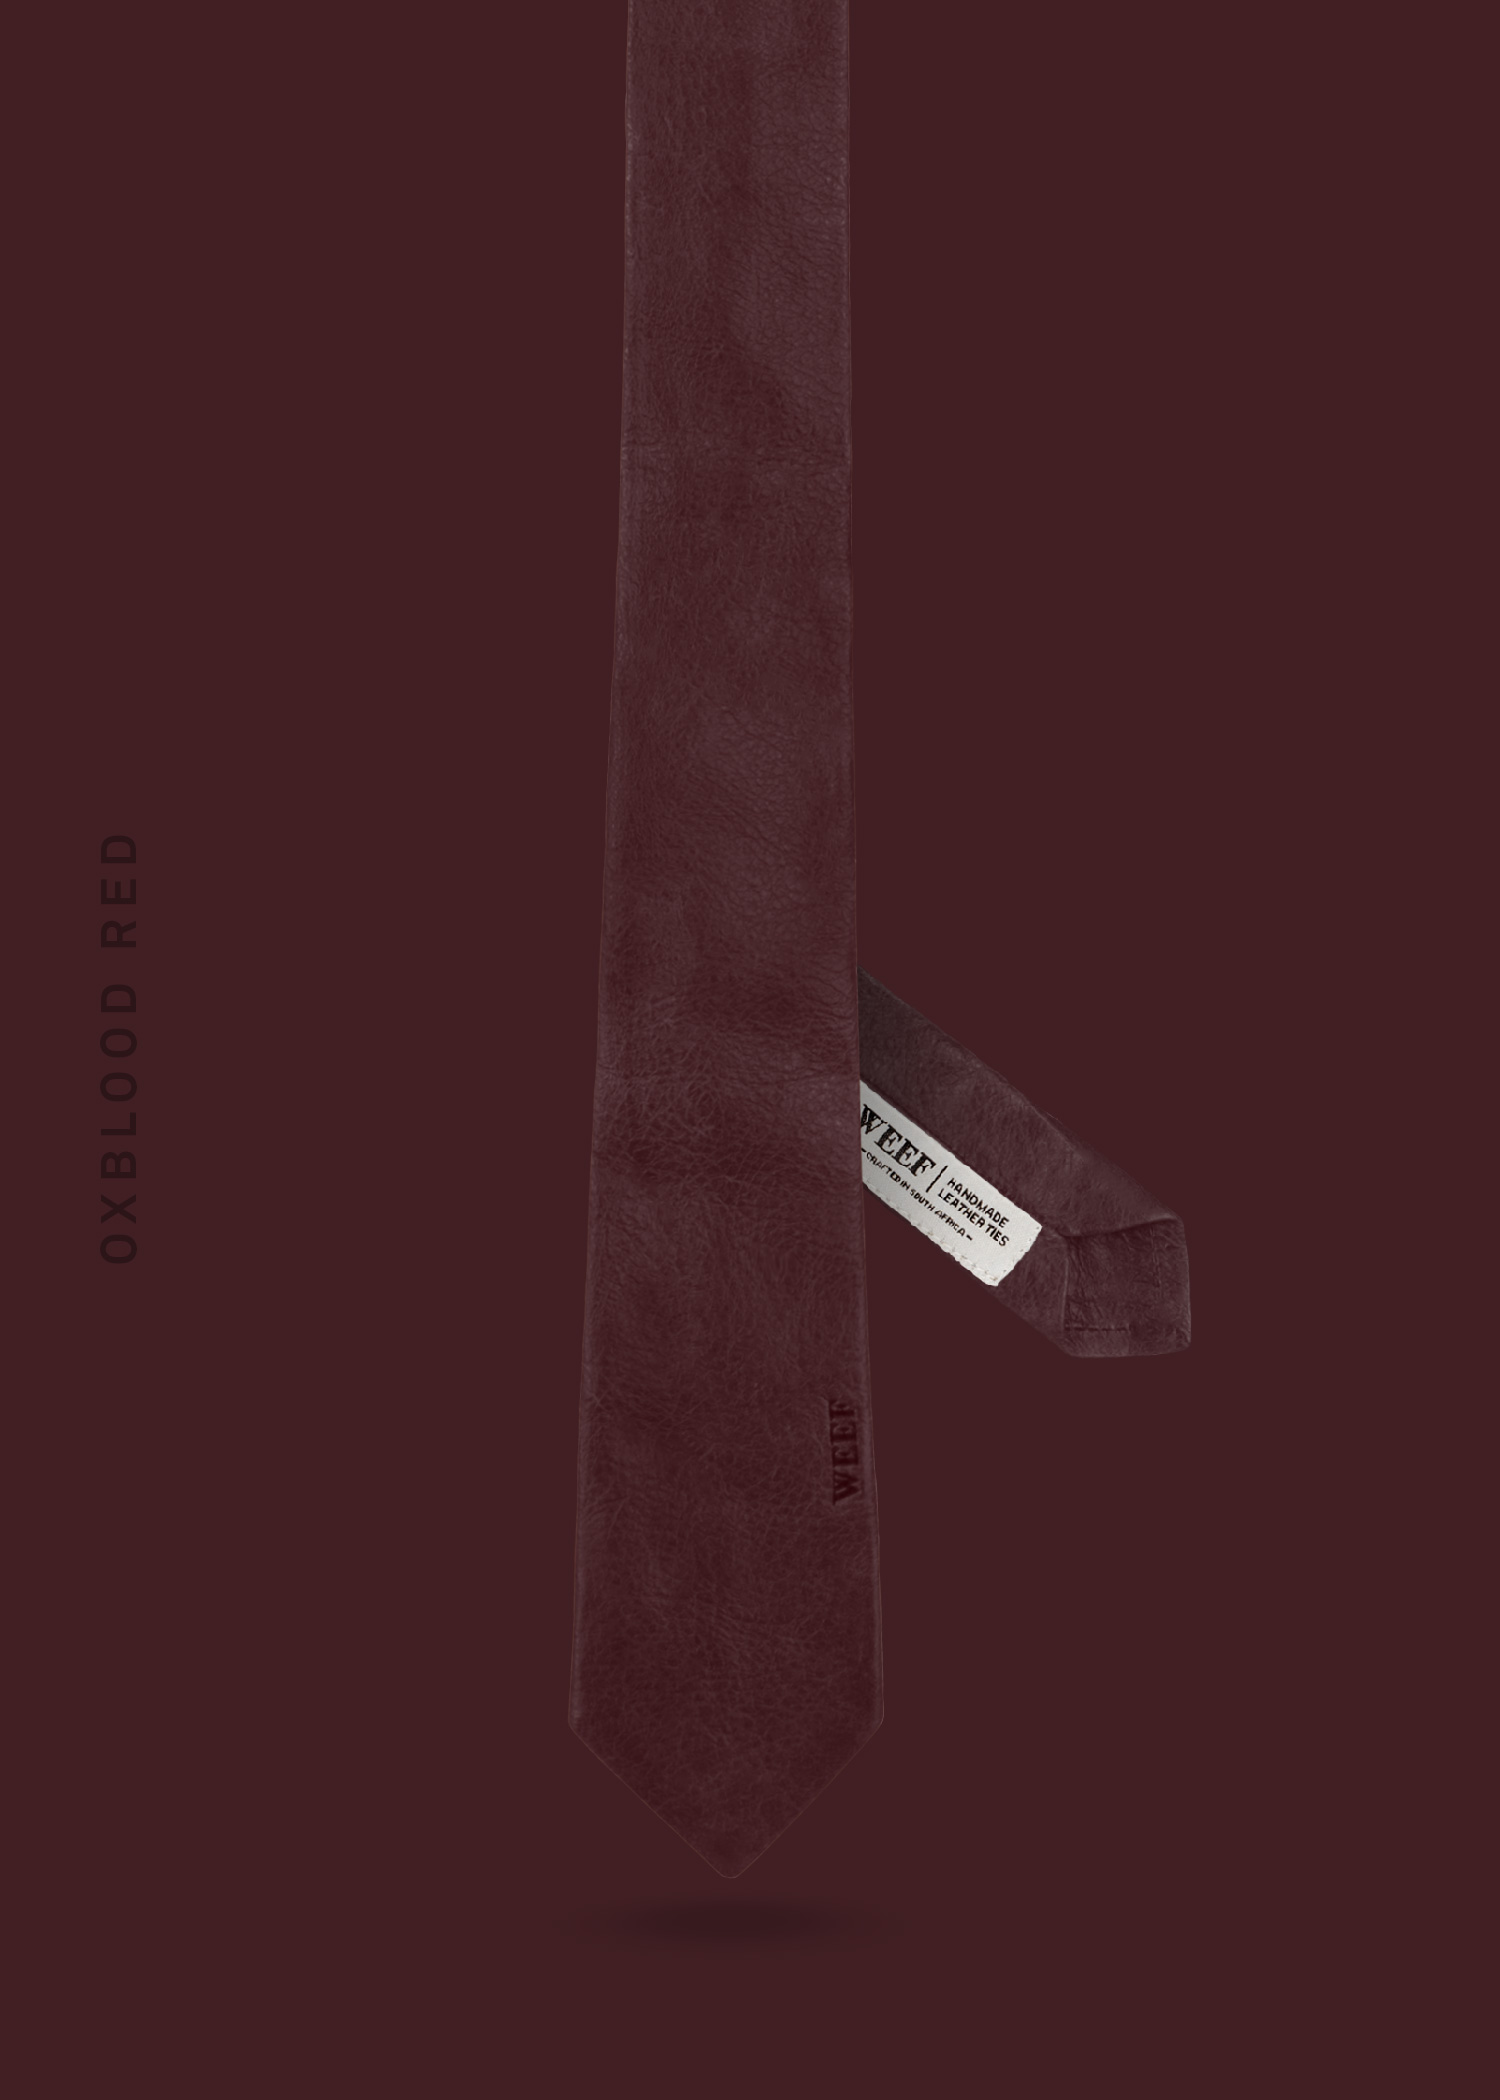 WEEF-Skinny-Tie-Oxblood-Red-v2